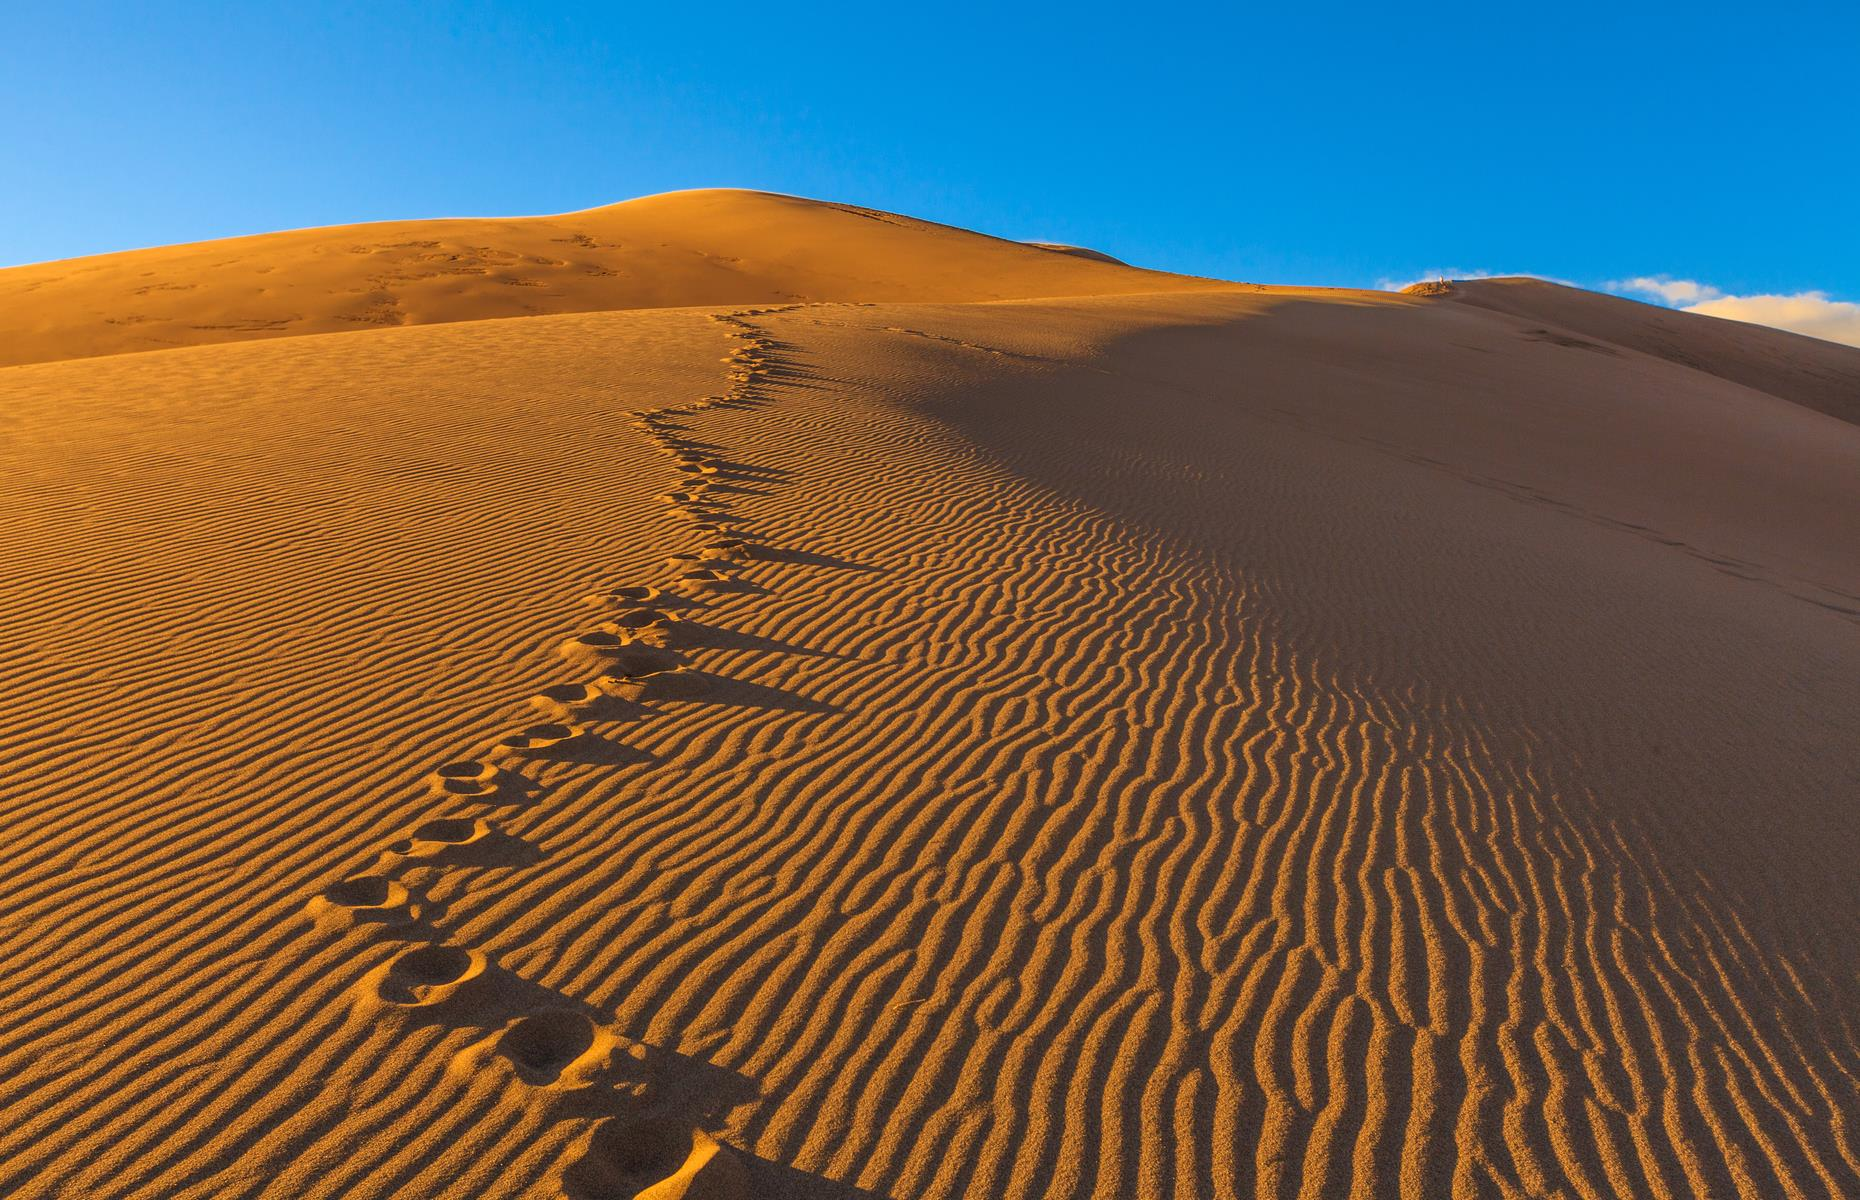 Slide 59 of 61: You'd be forgiven for thinking these vast, golden dunes were in the Sahara Desert but they're actually in Colorado, in the aptly named Great Sand Dunes National Park and Preserve. The loftiest dunes in North America, the sand mountains are framed by blue skies and flanked by snow-capped peaks – they're best explored on a sled or a sand board, or after dark when the inky sky above is flecked with stars.